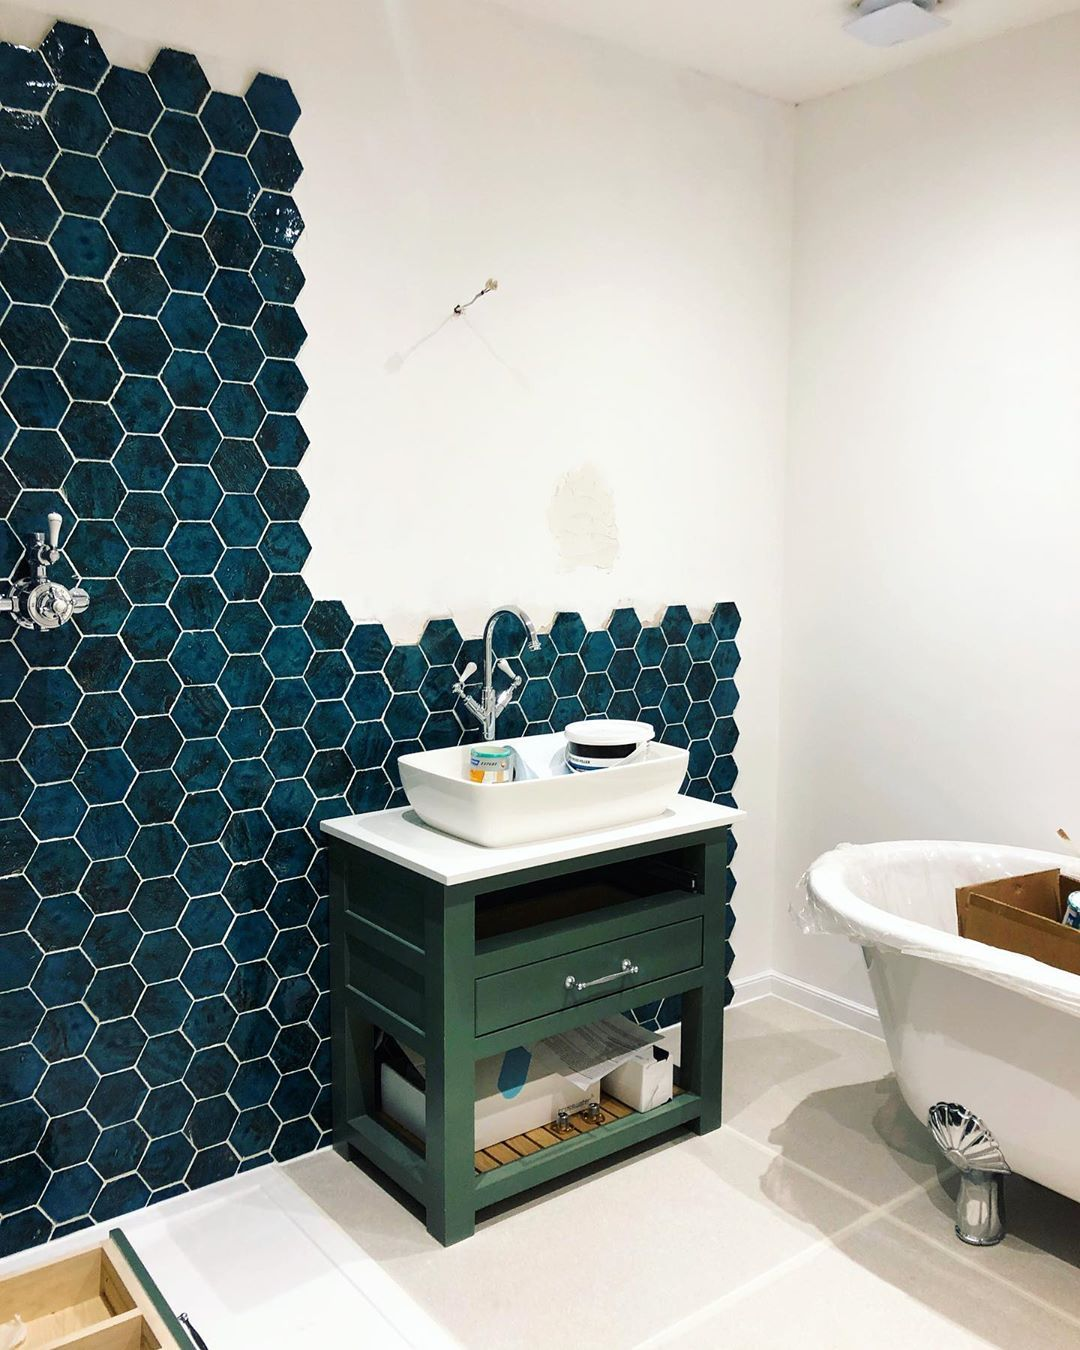 Progress! The en-suite is starting to look pretty amazing day by day. We've got ...-#bathroomdesign